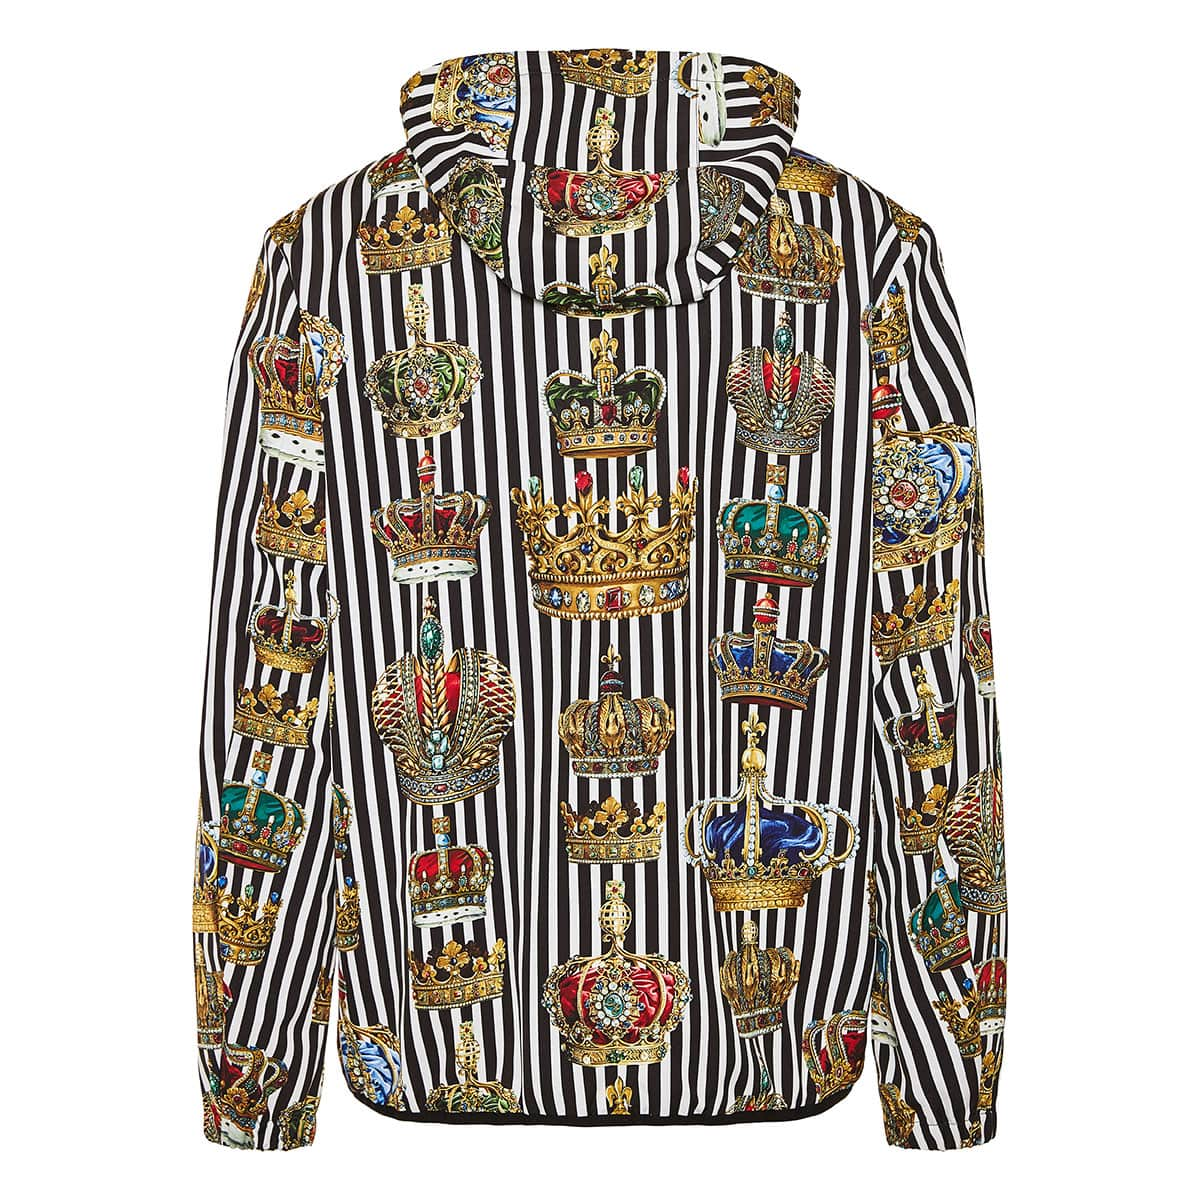 Crown printed striped nylon jacket